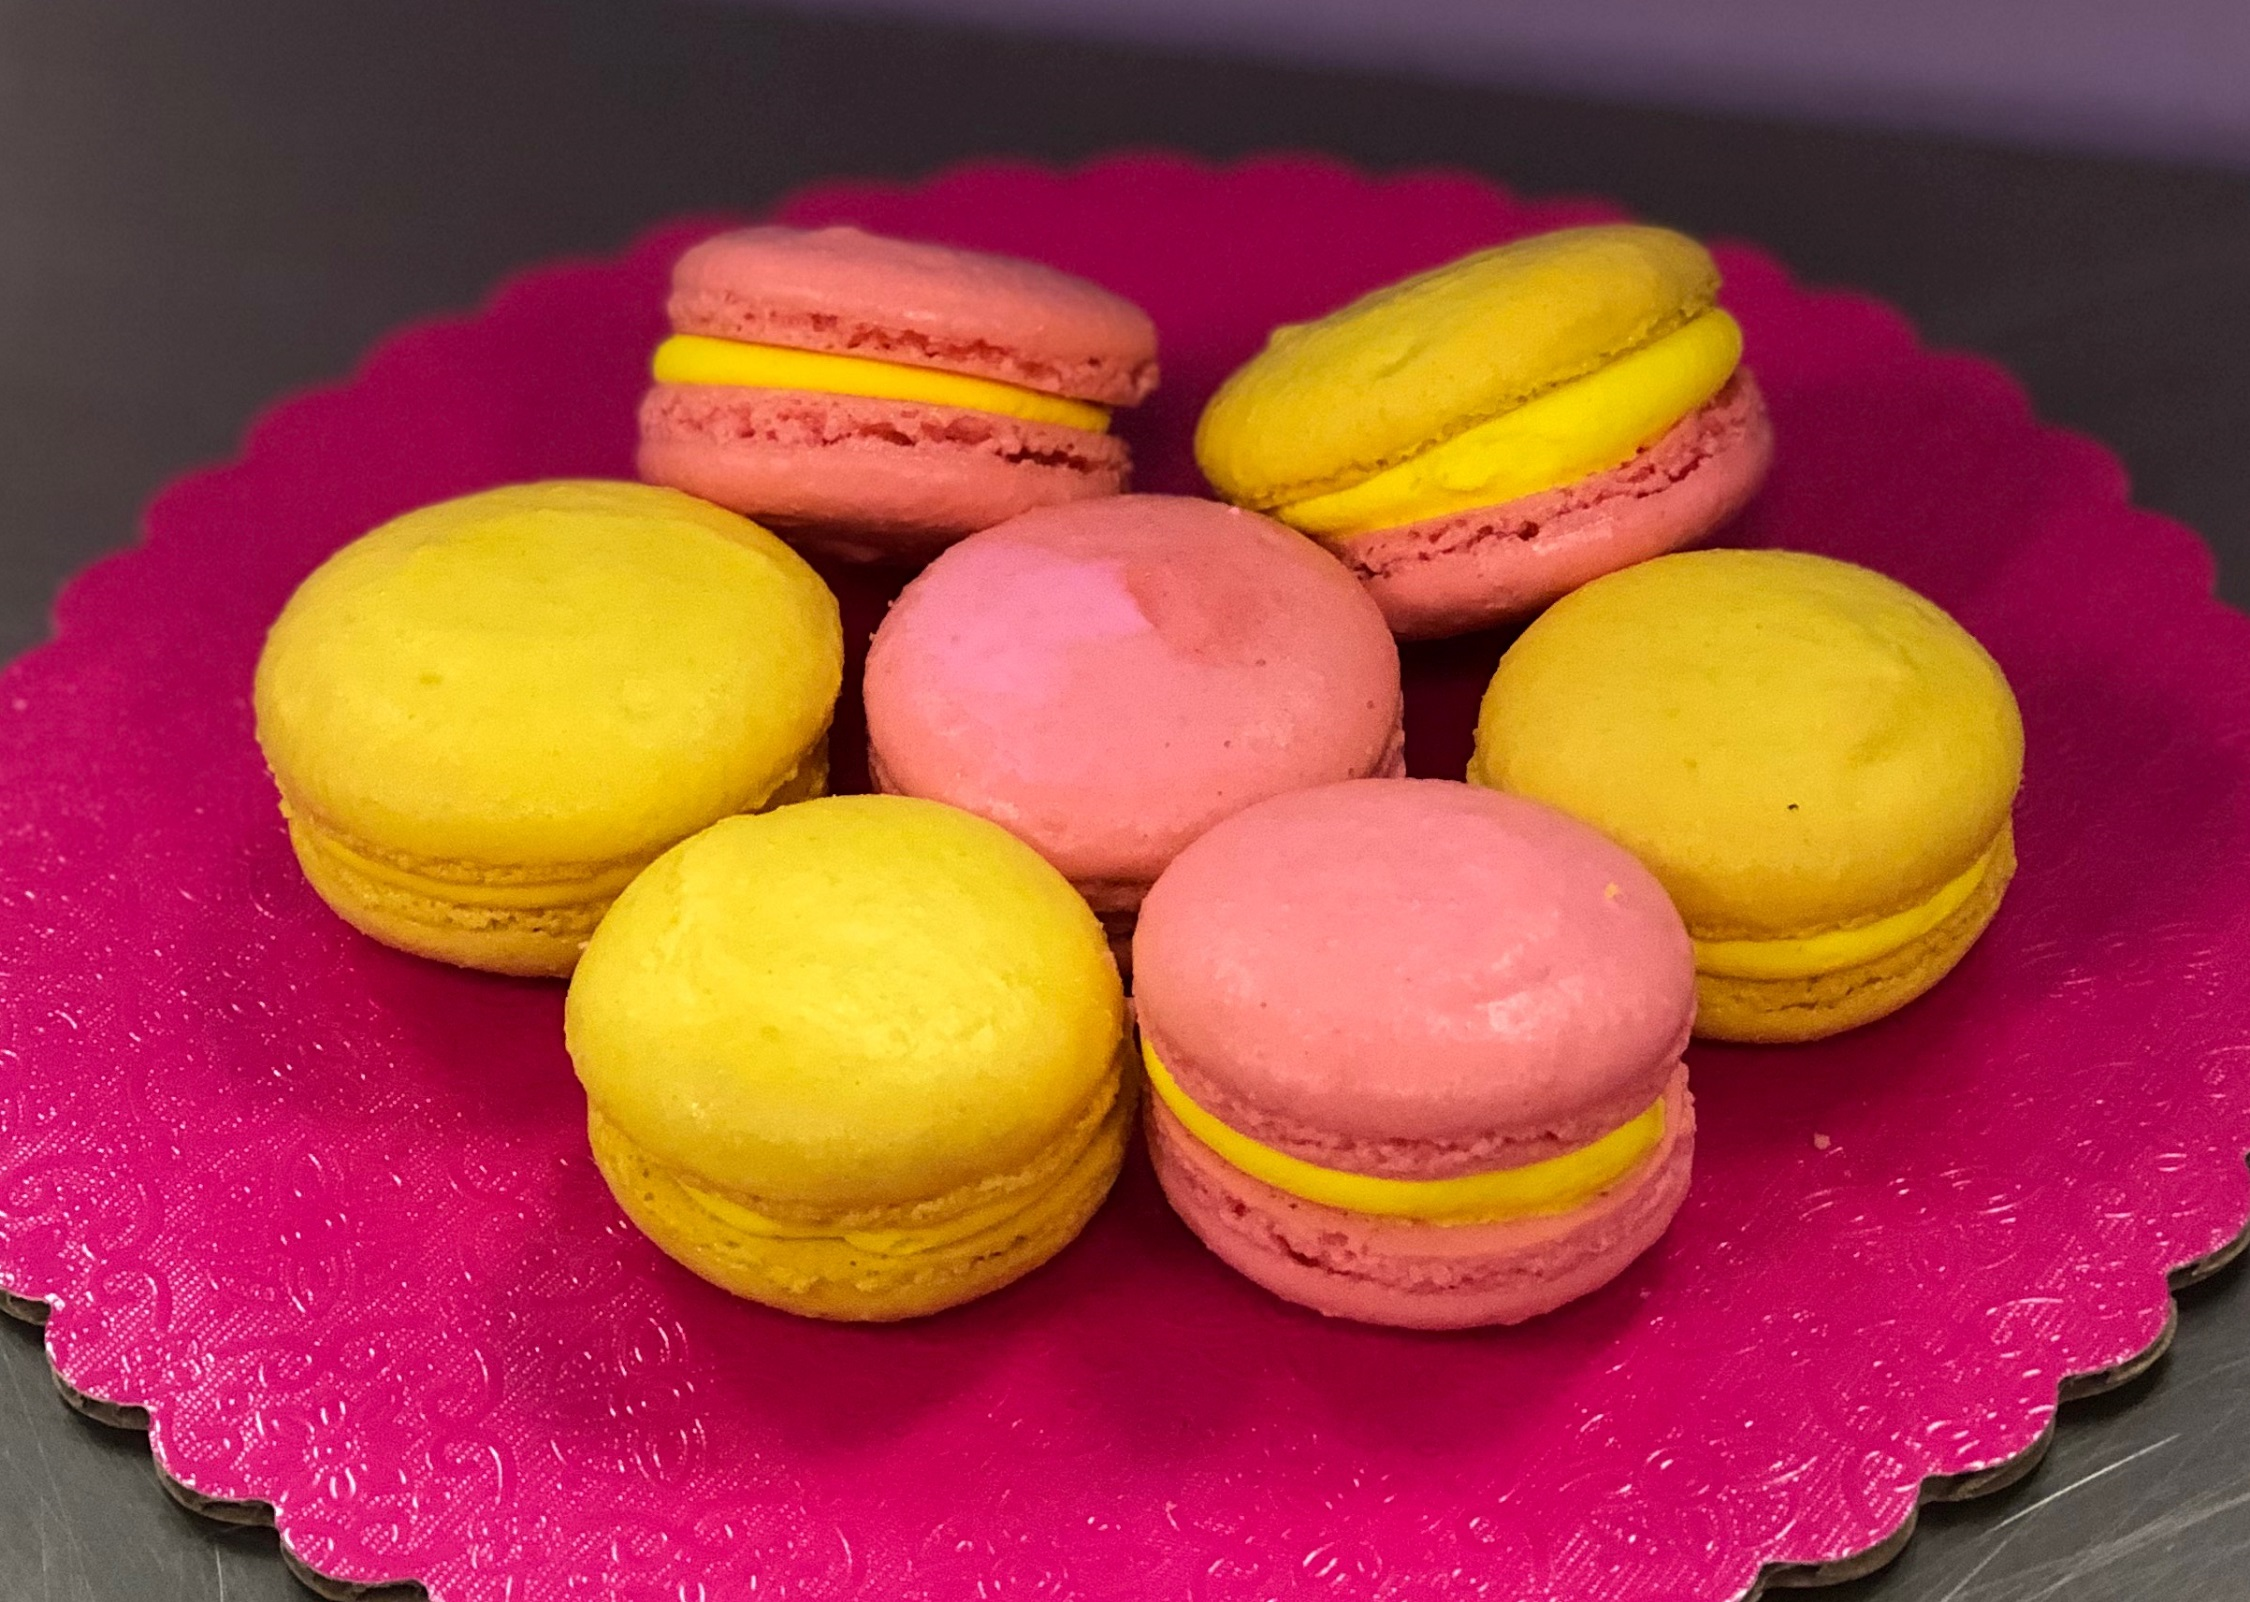 Lemon & Passion Fruit Macarons